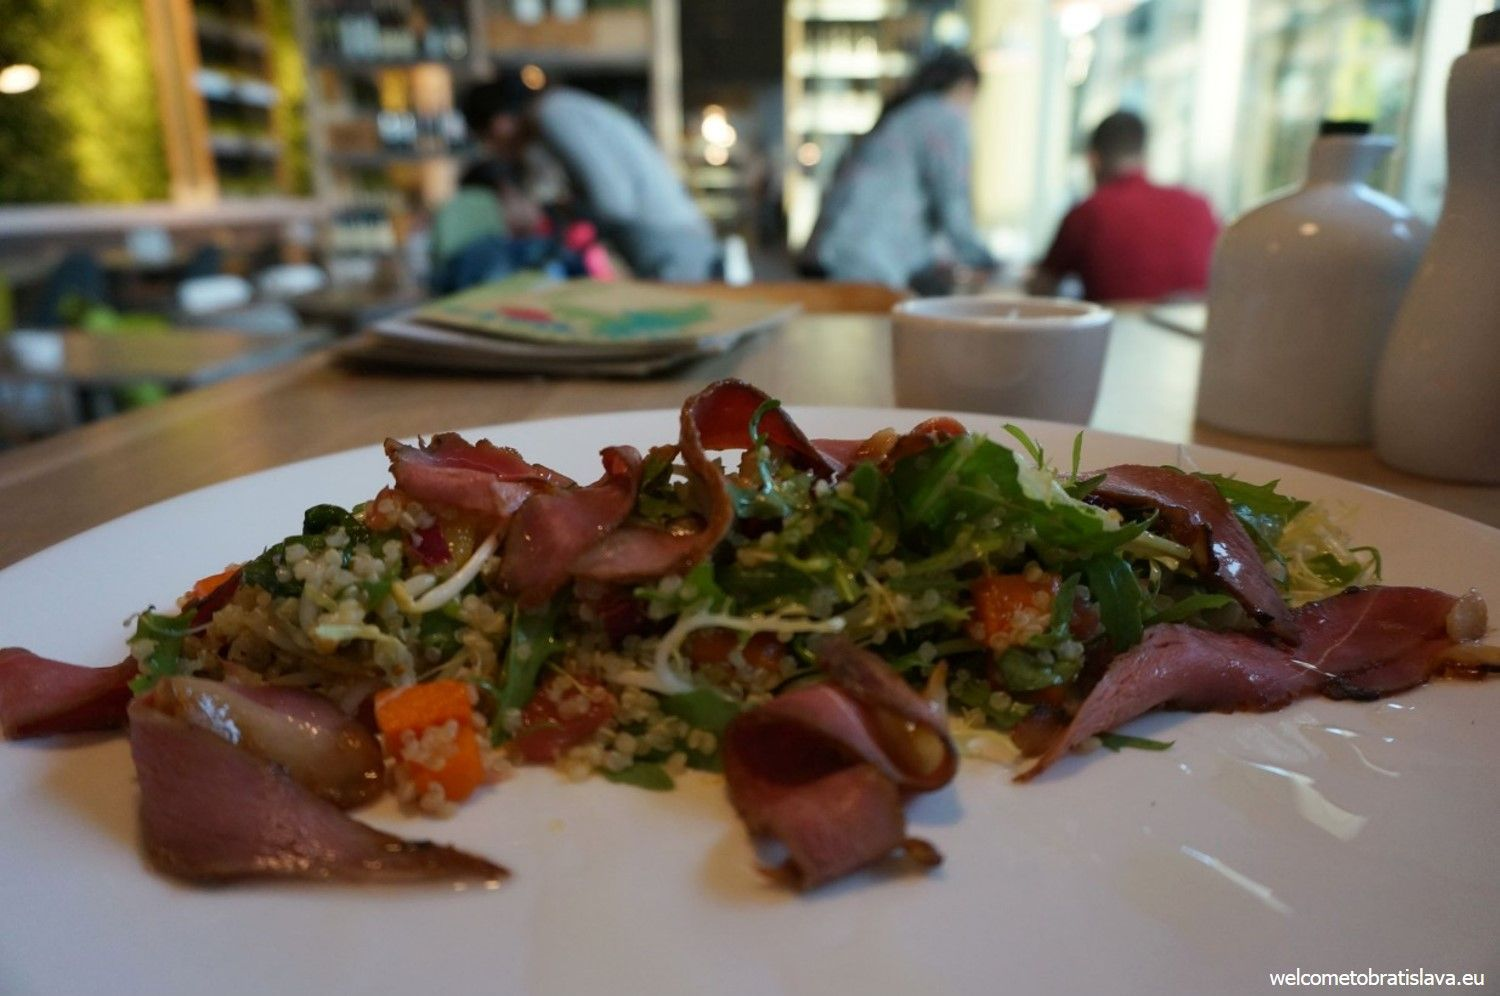 Salad with marinated duck, quinoa, roasted pumpkin, sprouts, grapefruit pulp and citrus dressing